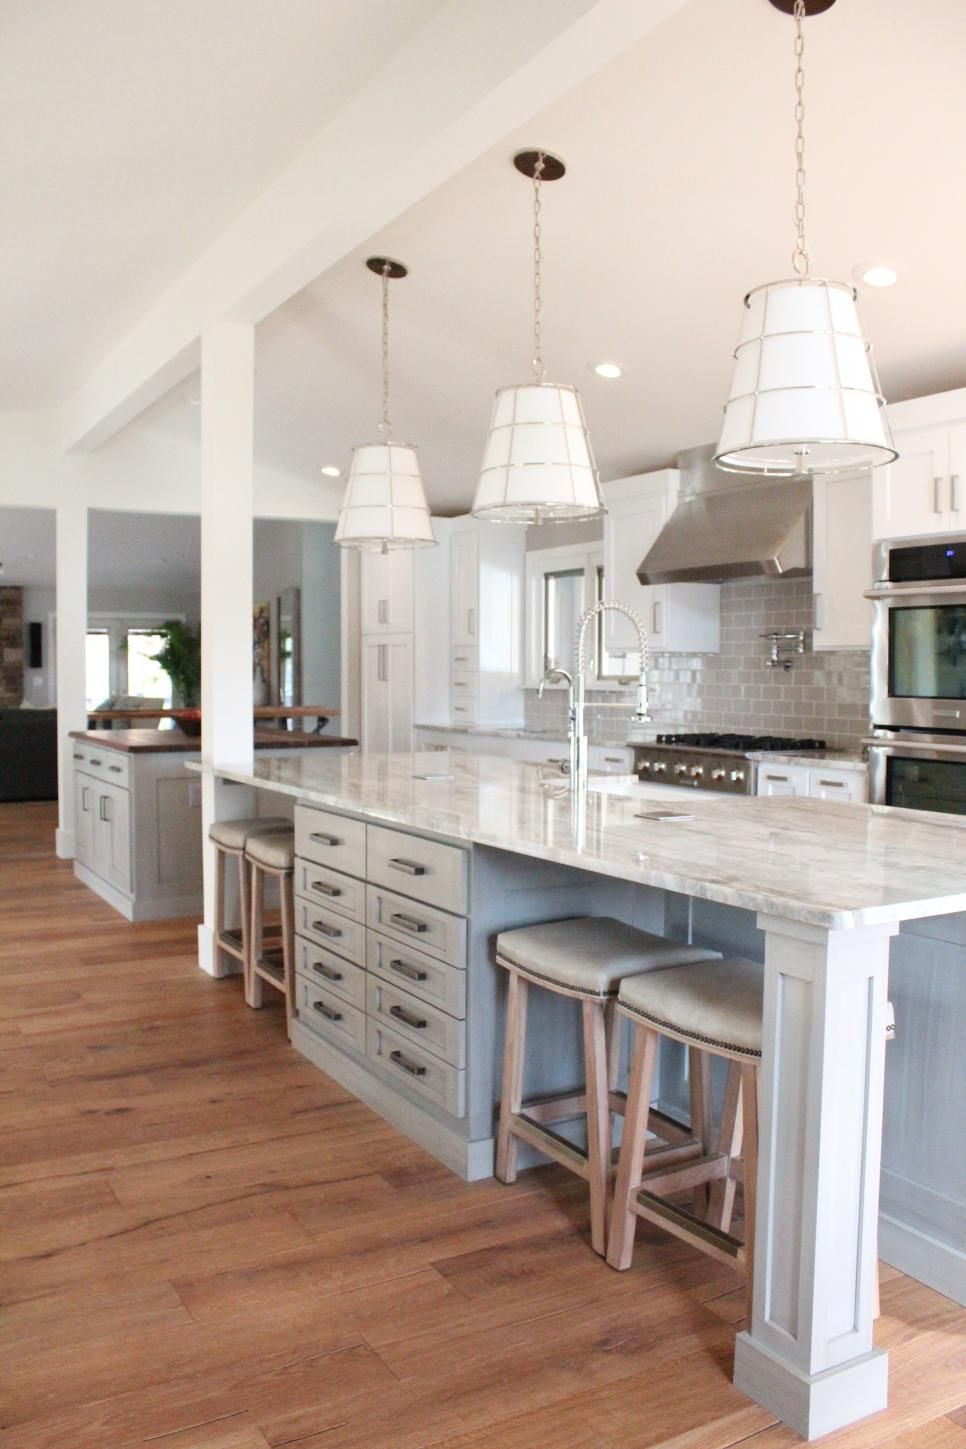 Perfect Marble Countertops And Chrome Pendant Lights Add Sophistication To This  Gray, Open Kitchen. Two